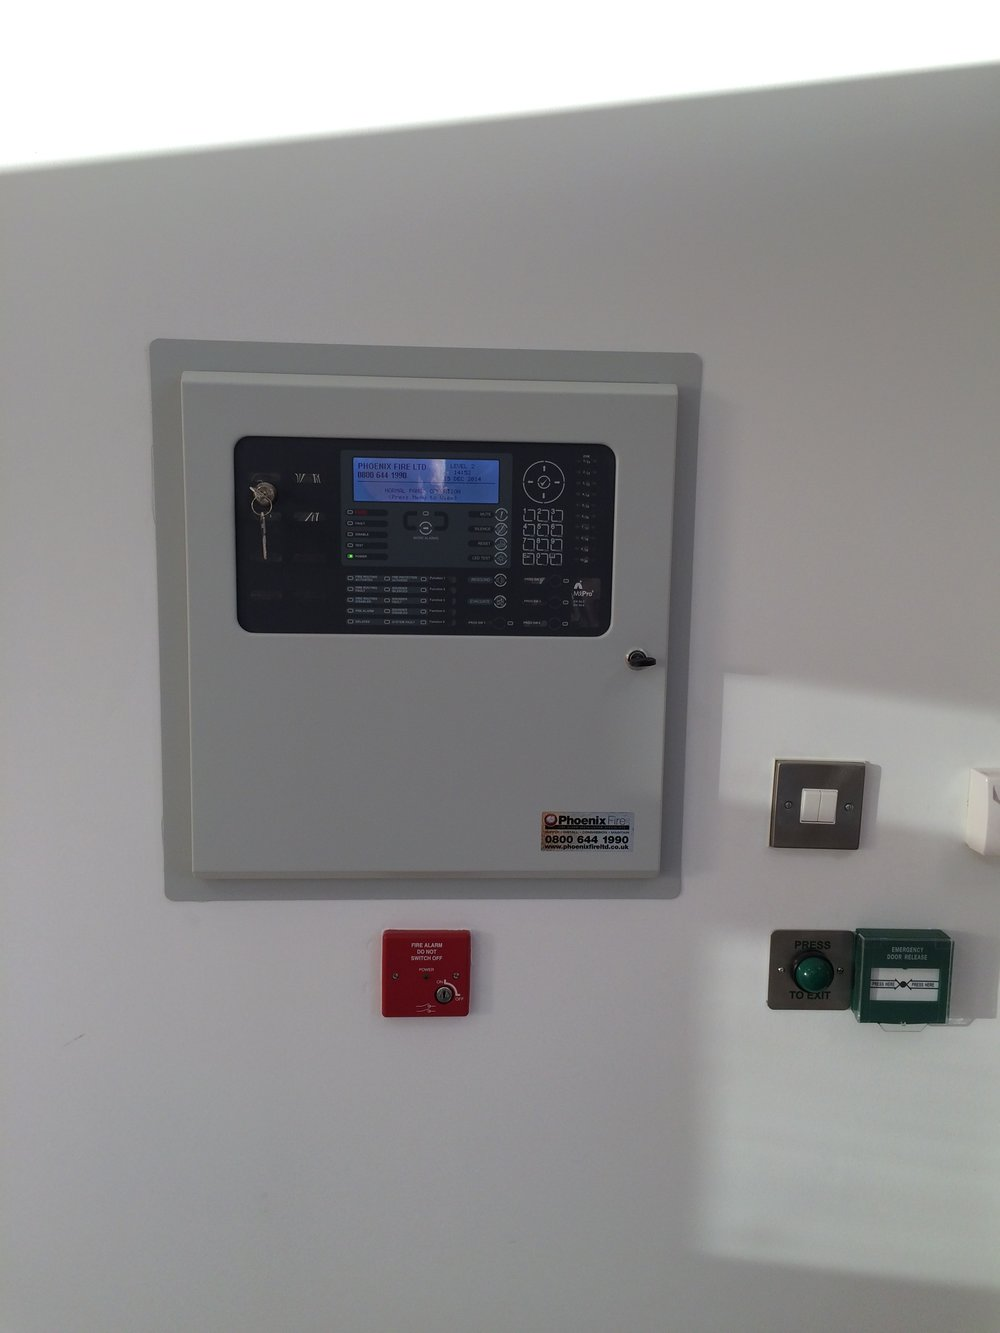 Fire alarm panel in commercial property